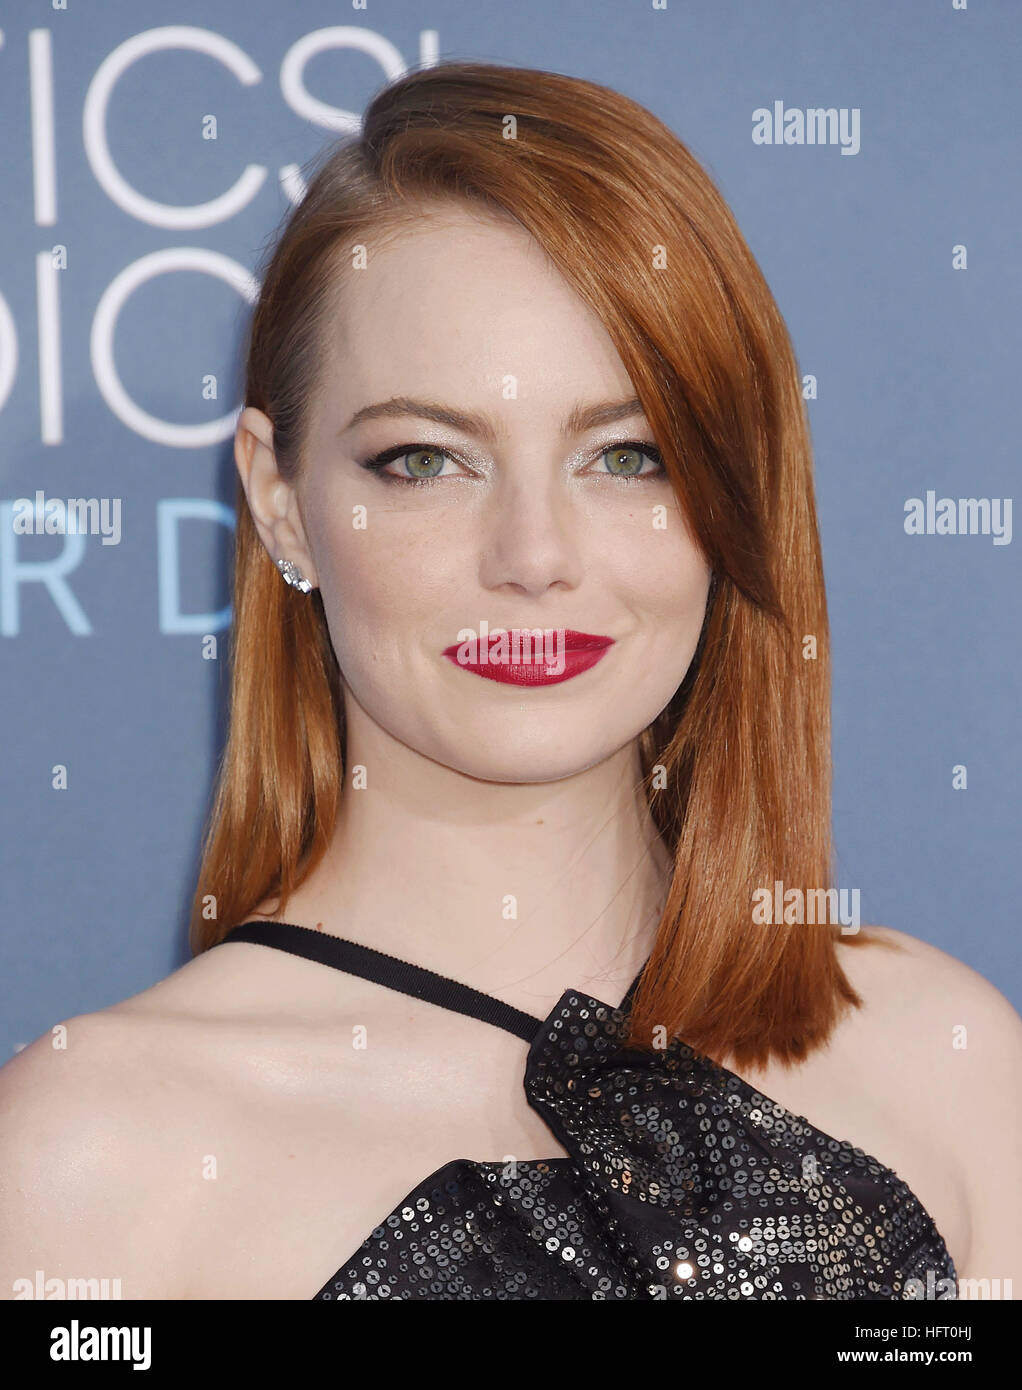 EMMA STONE actrice américaine en décembre 2016. Photo Jeffrey Mayer Photo Stock